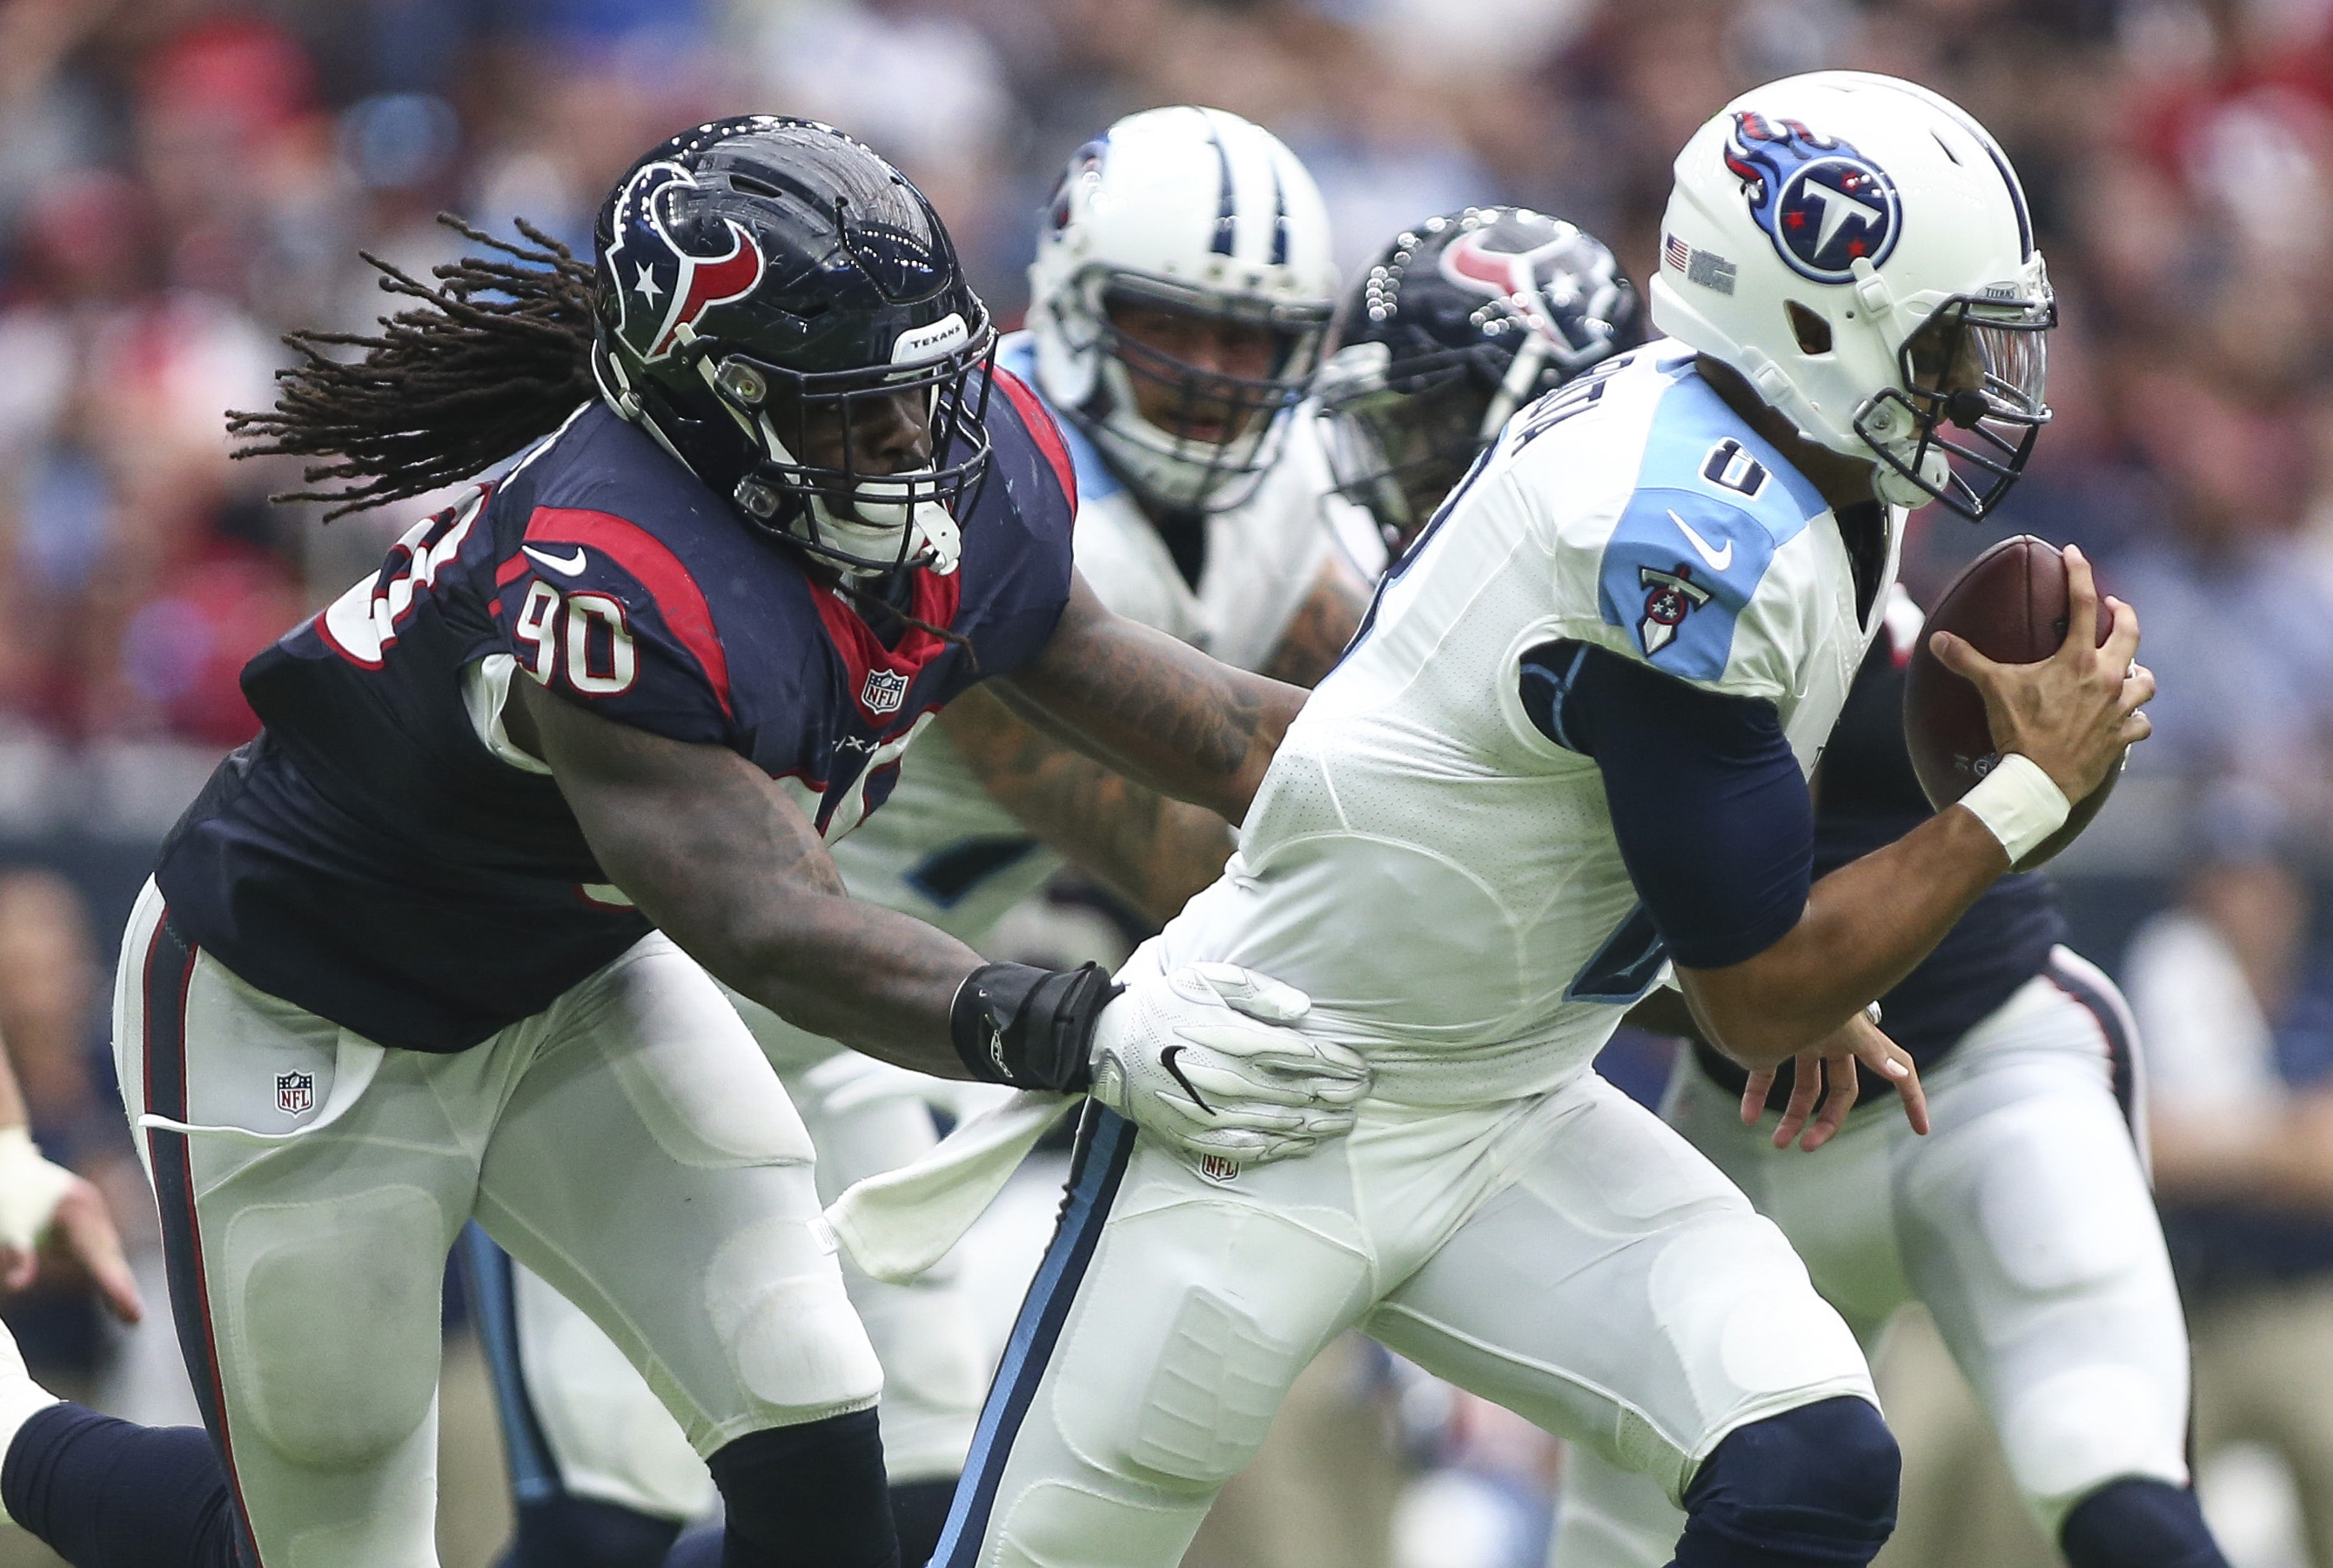 Seeing a bit of this from Clowney on Bradford today would bode well.